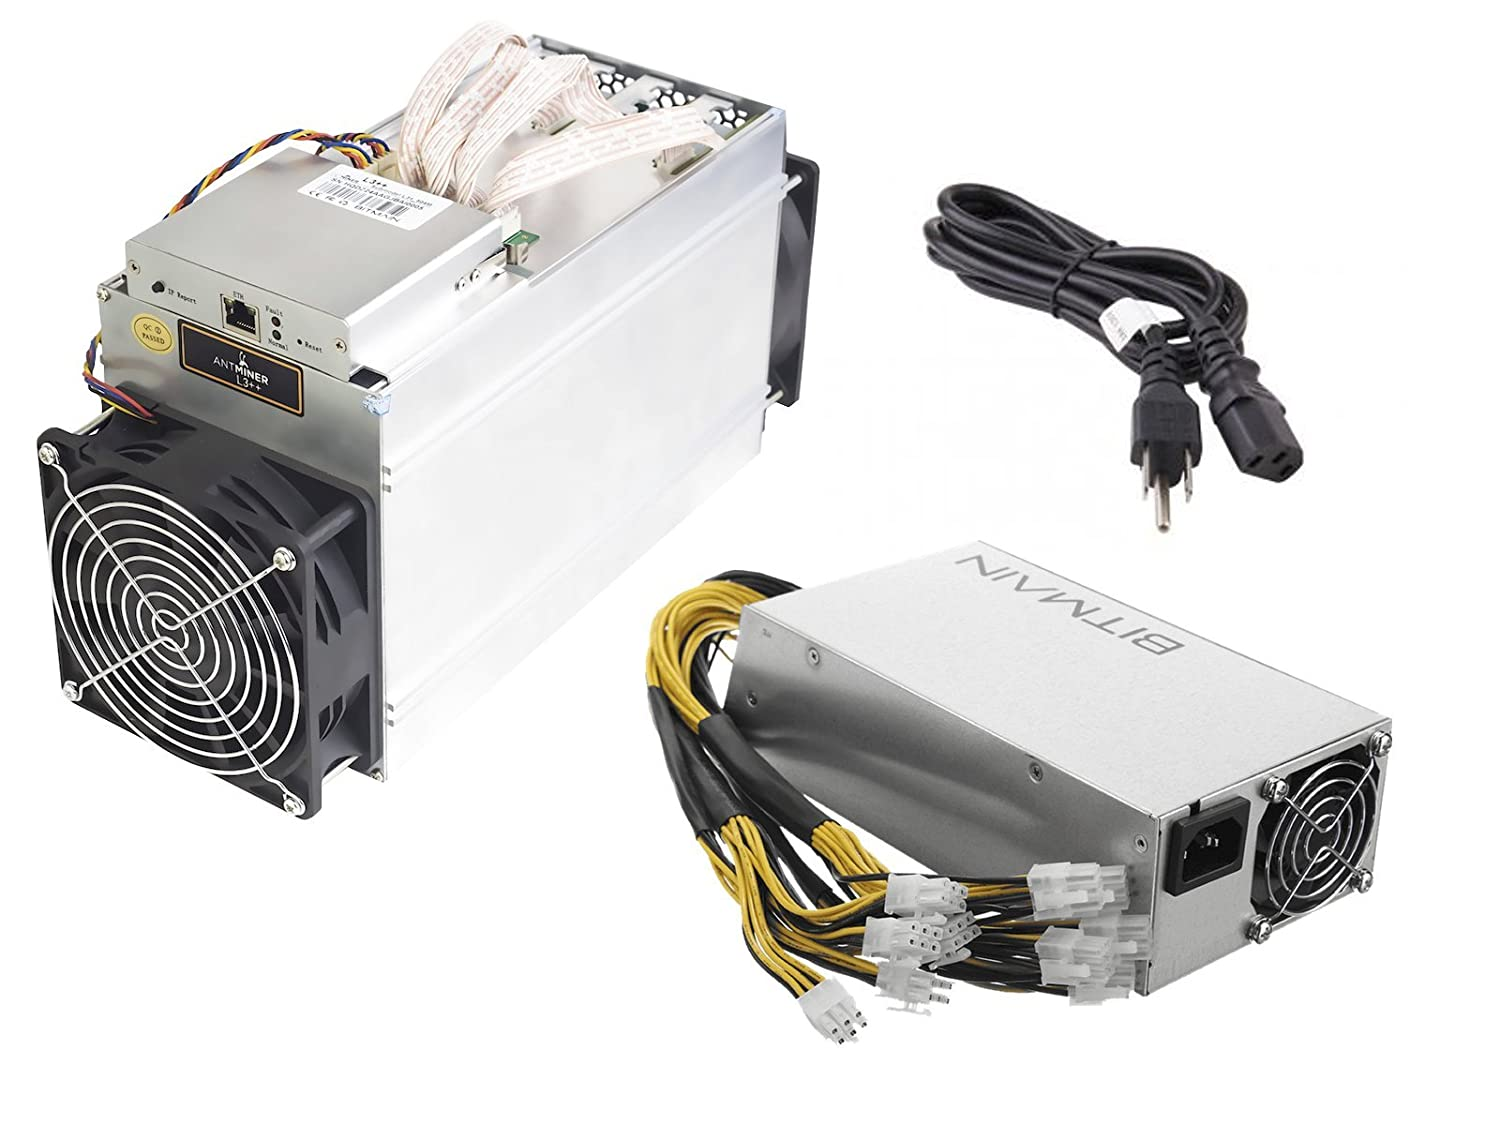 Bitmain Antminer L3 For Sale For Us Dollars Antminer Airflow Noise